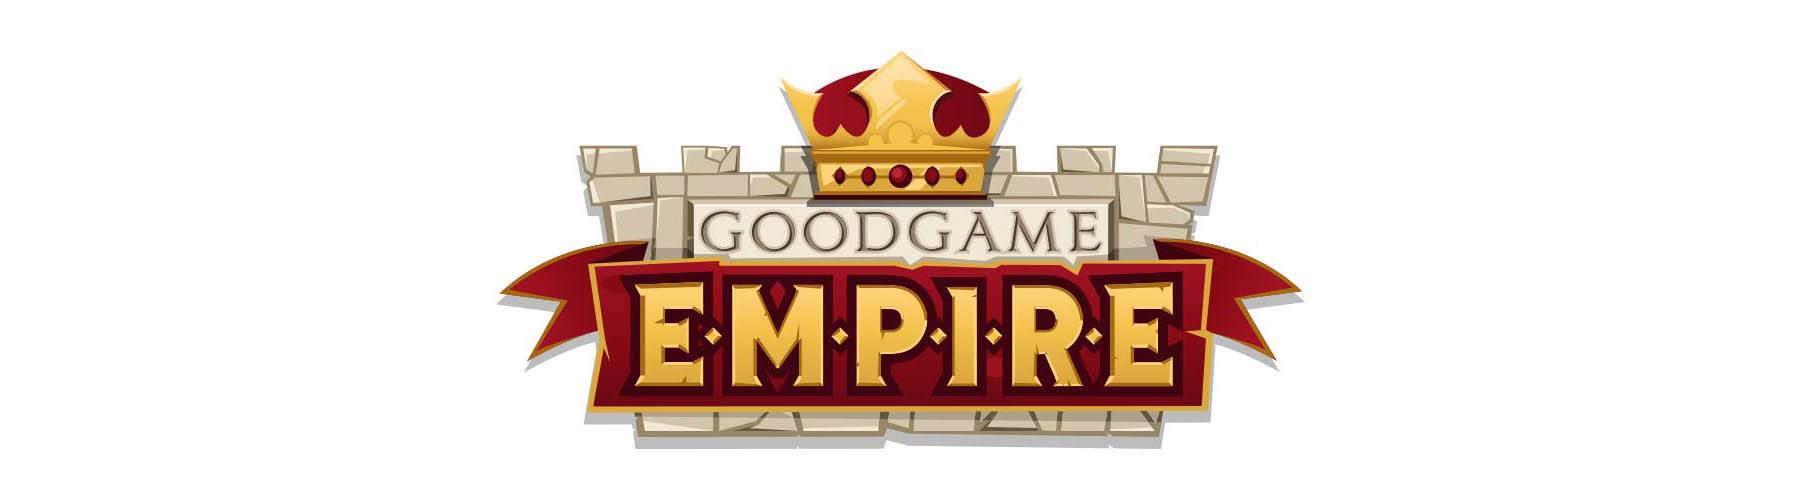 Goodgame Studios-Support